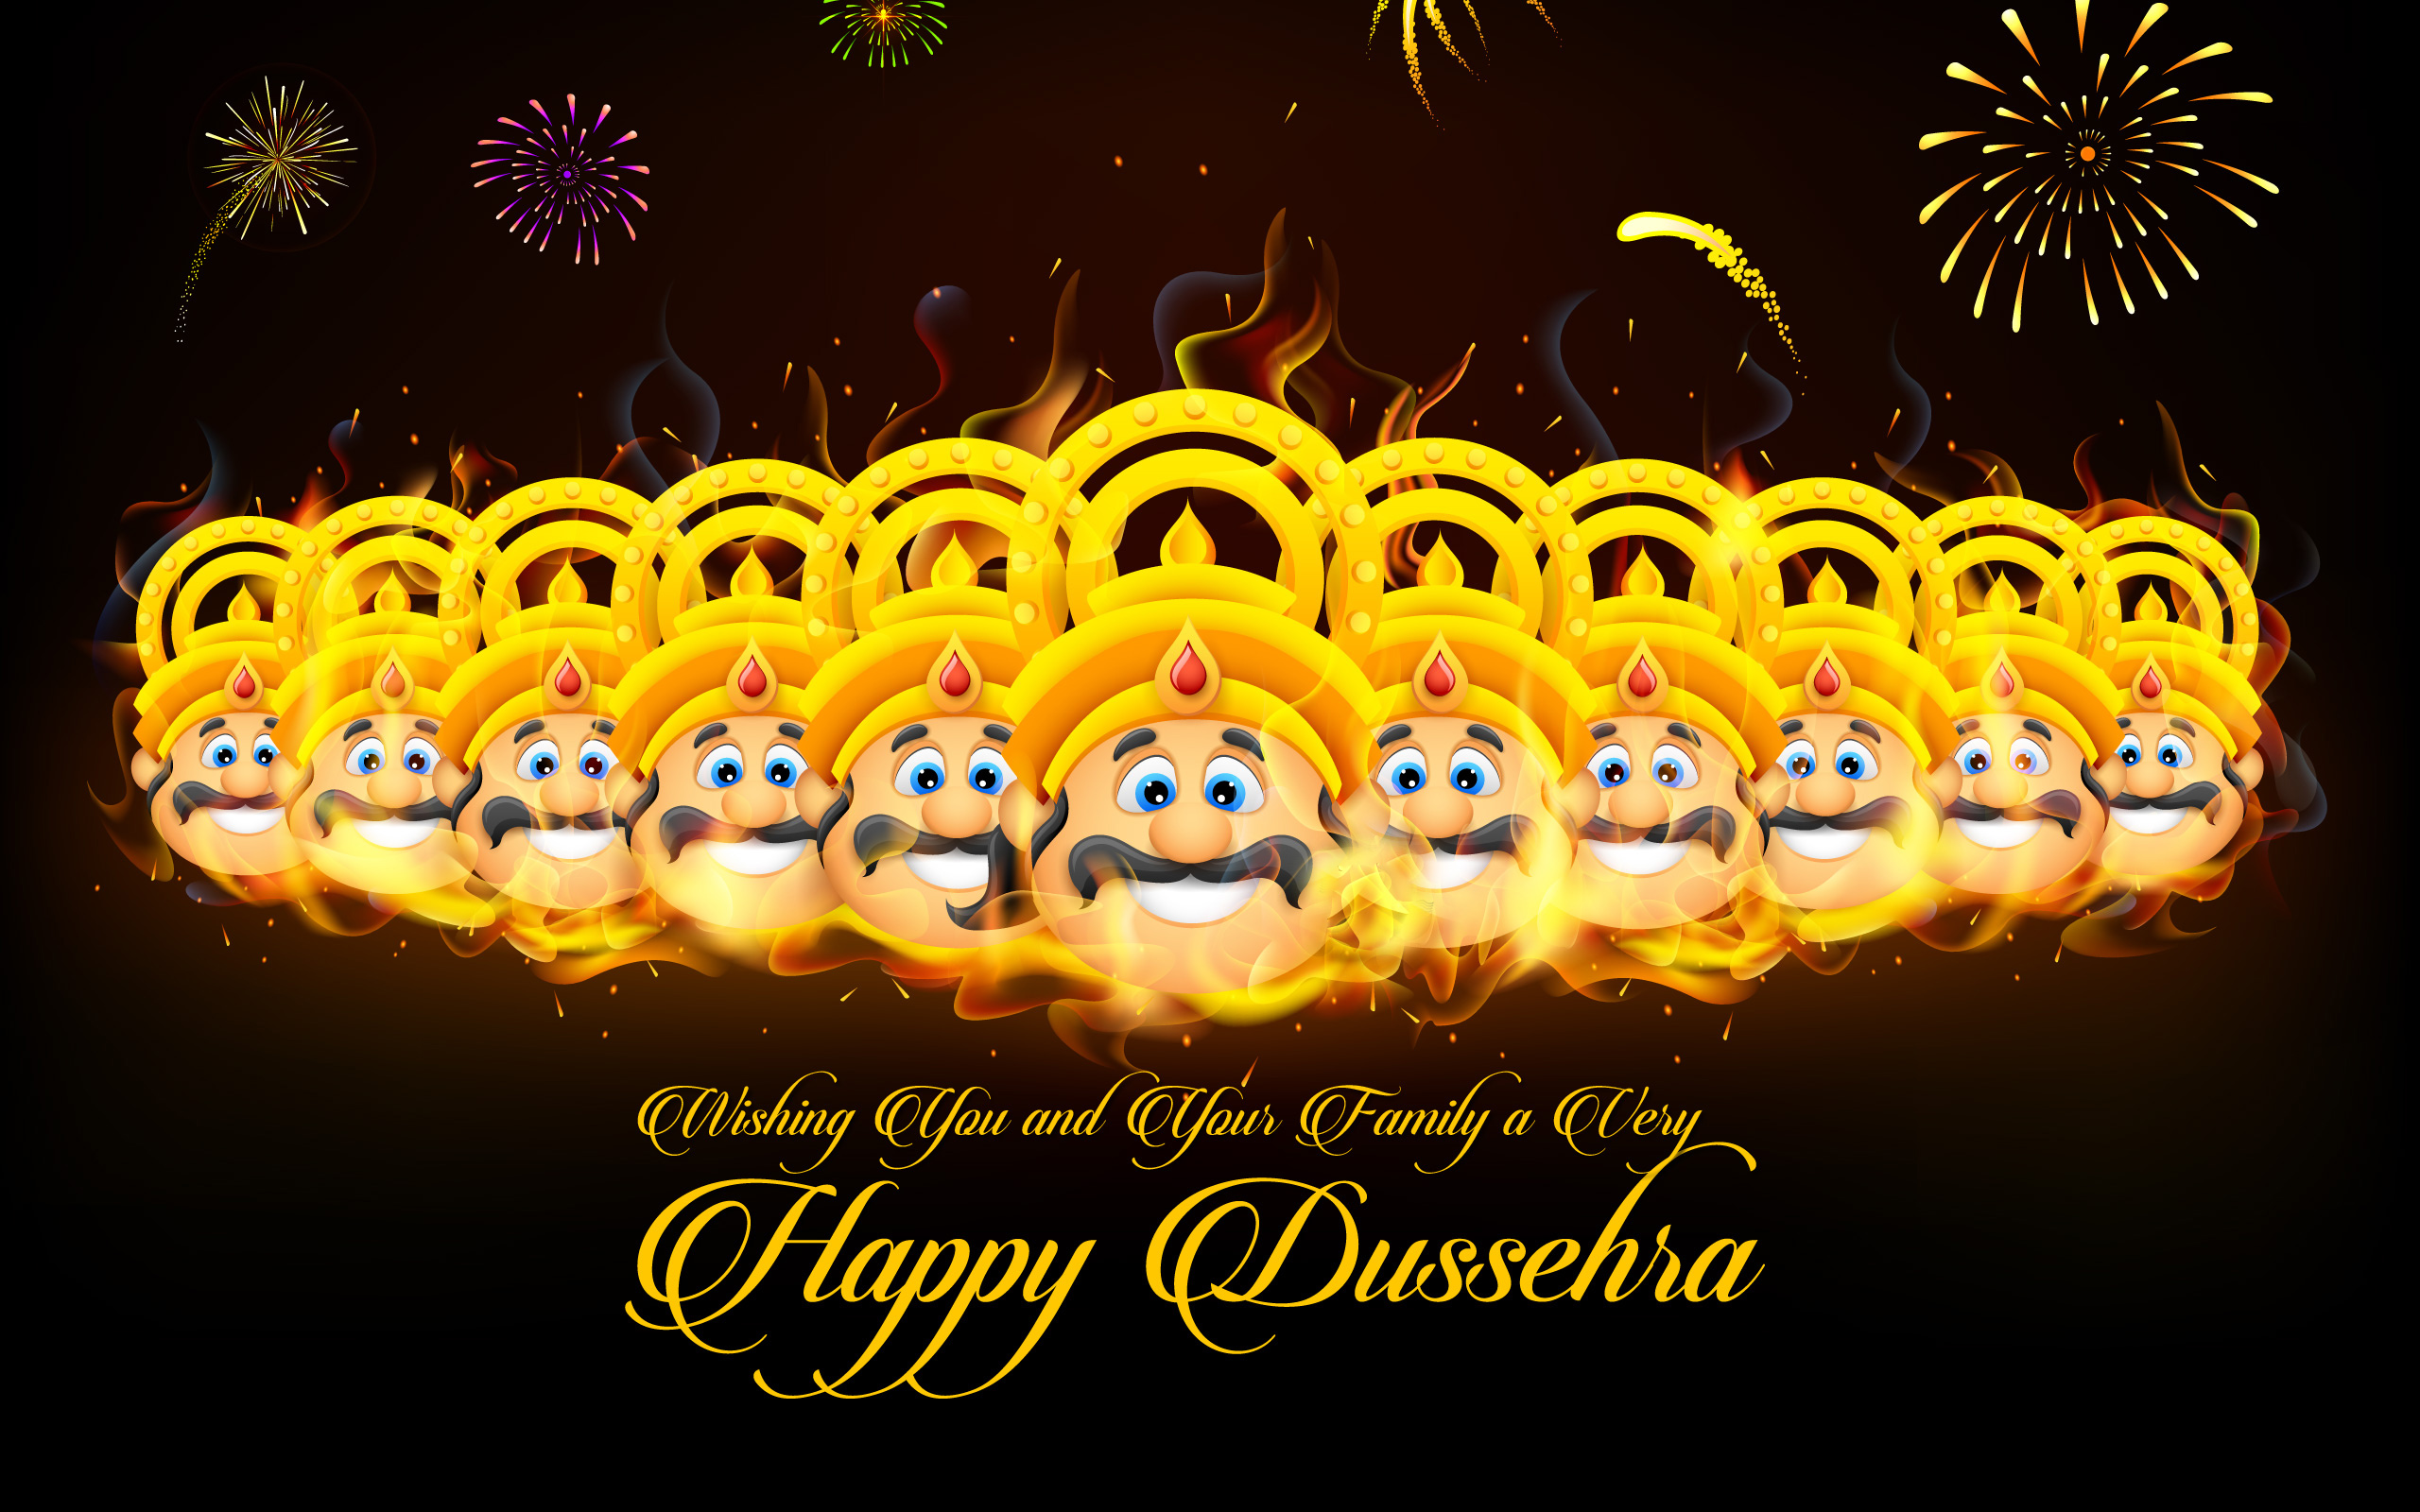 Happy Dussehra Vijayadashami Wishes Images & Pictures For WhatsApp